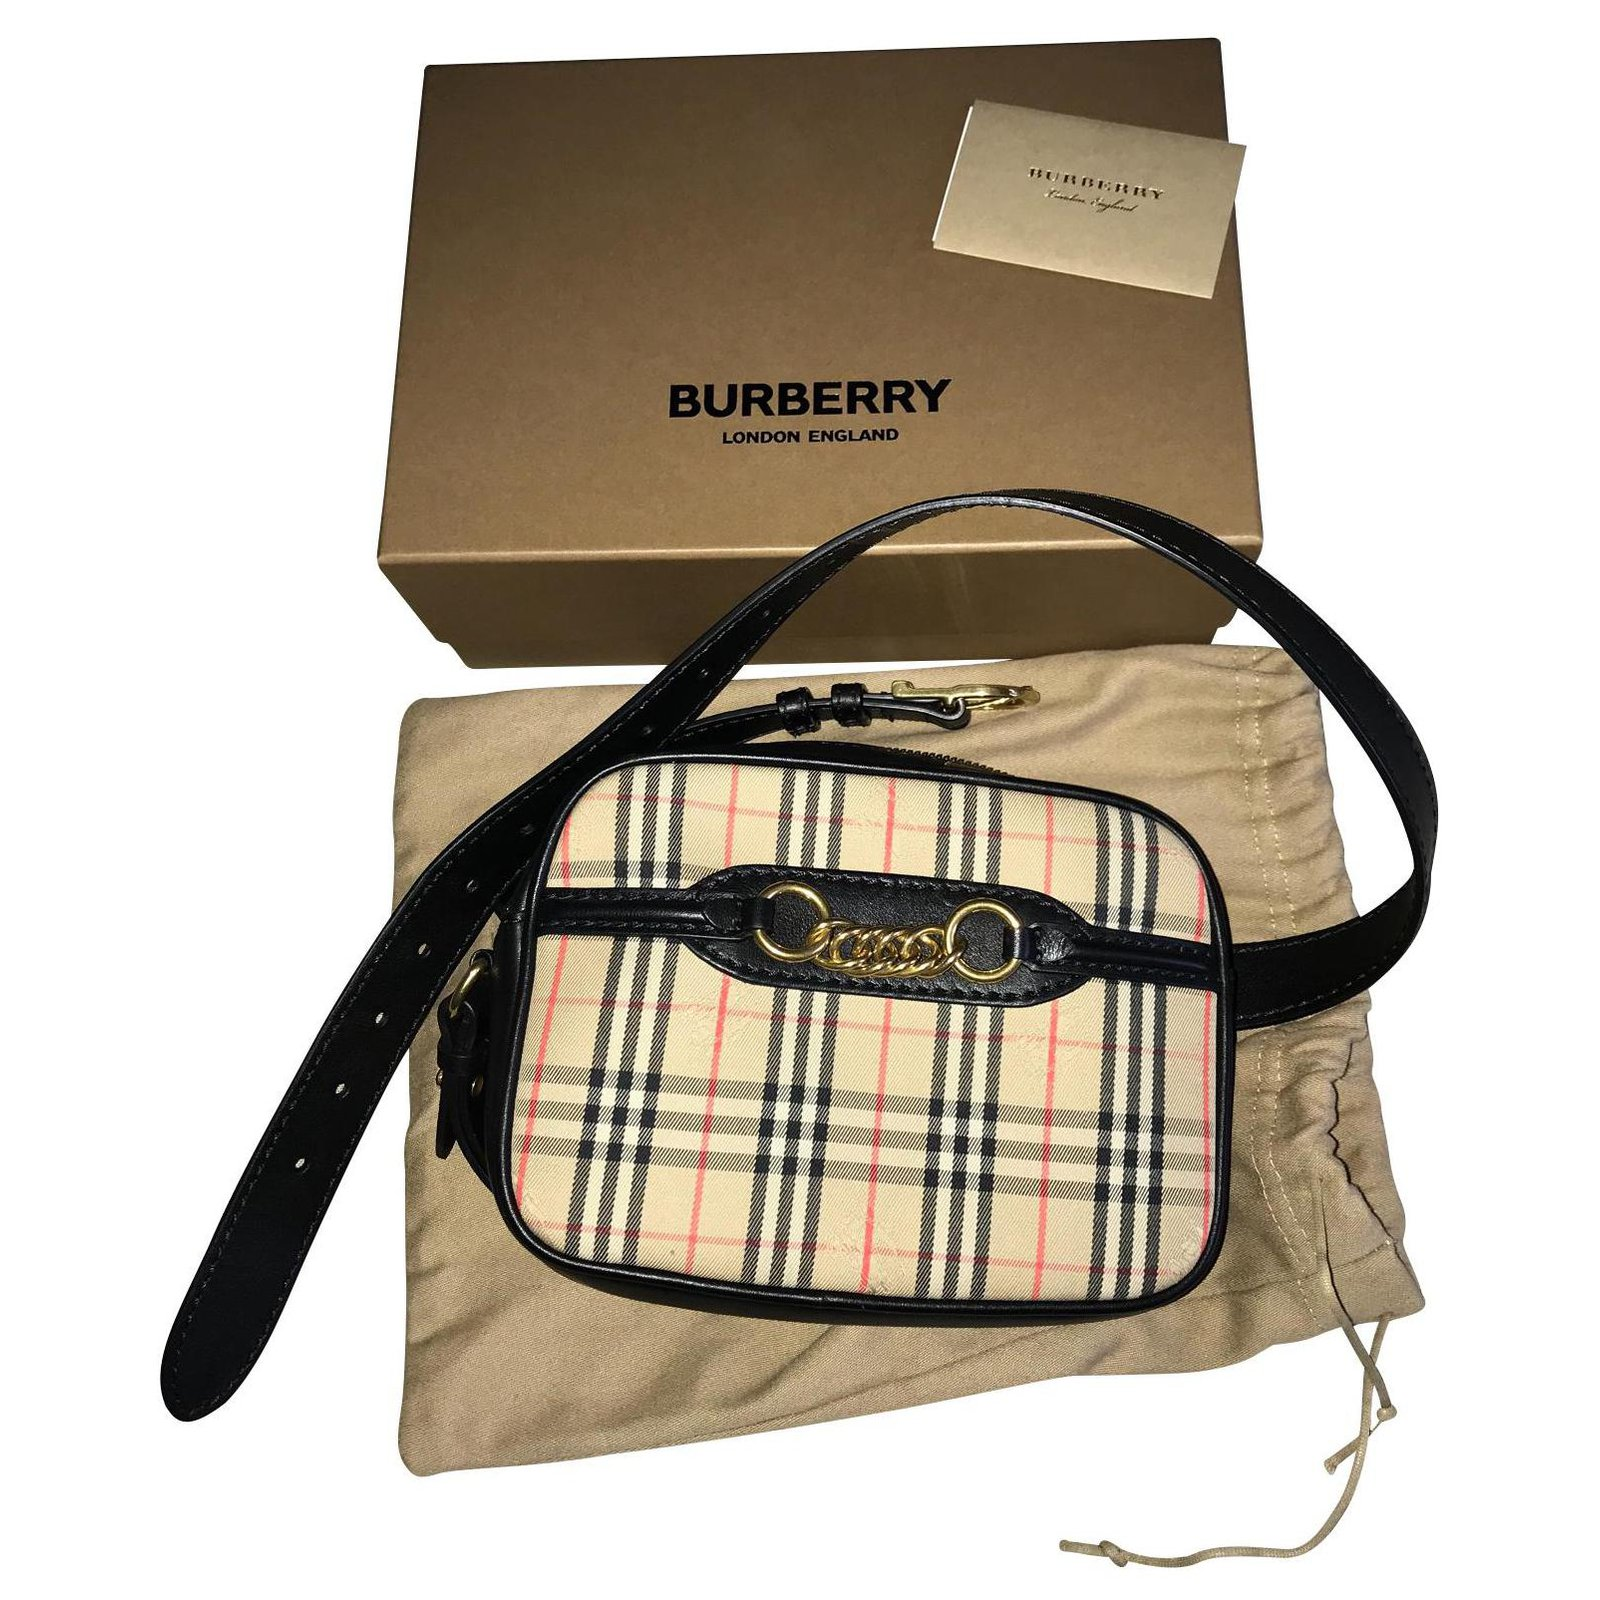 Burberry Handbags Leather